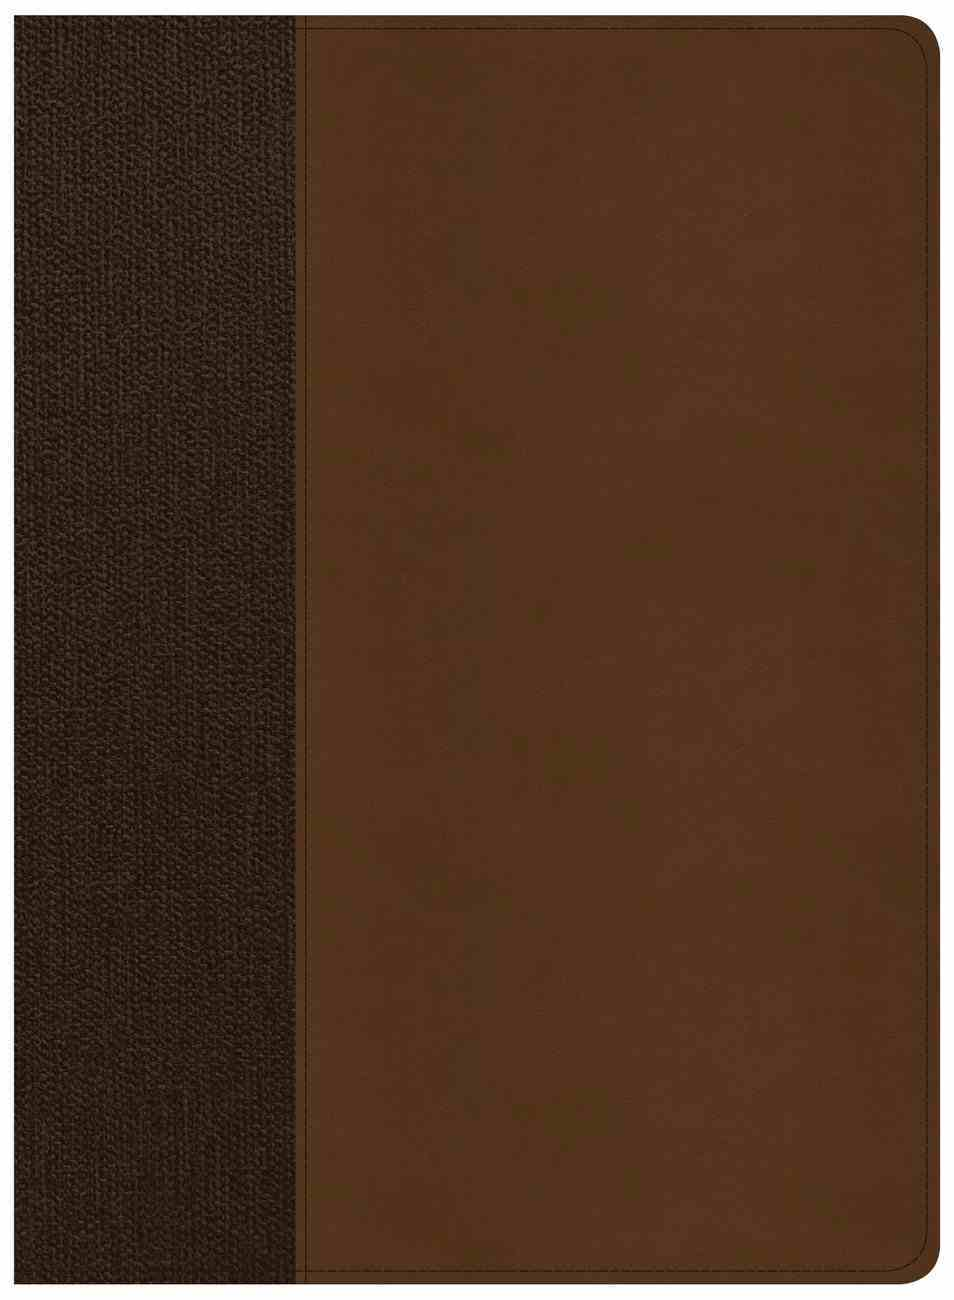 CSB Life Essentials Study Bible Brown Indexed (Black Letter Edition) Imitation Leather